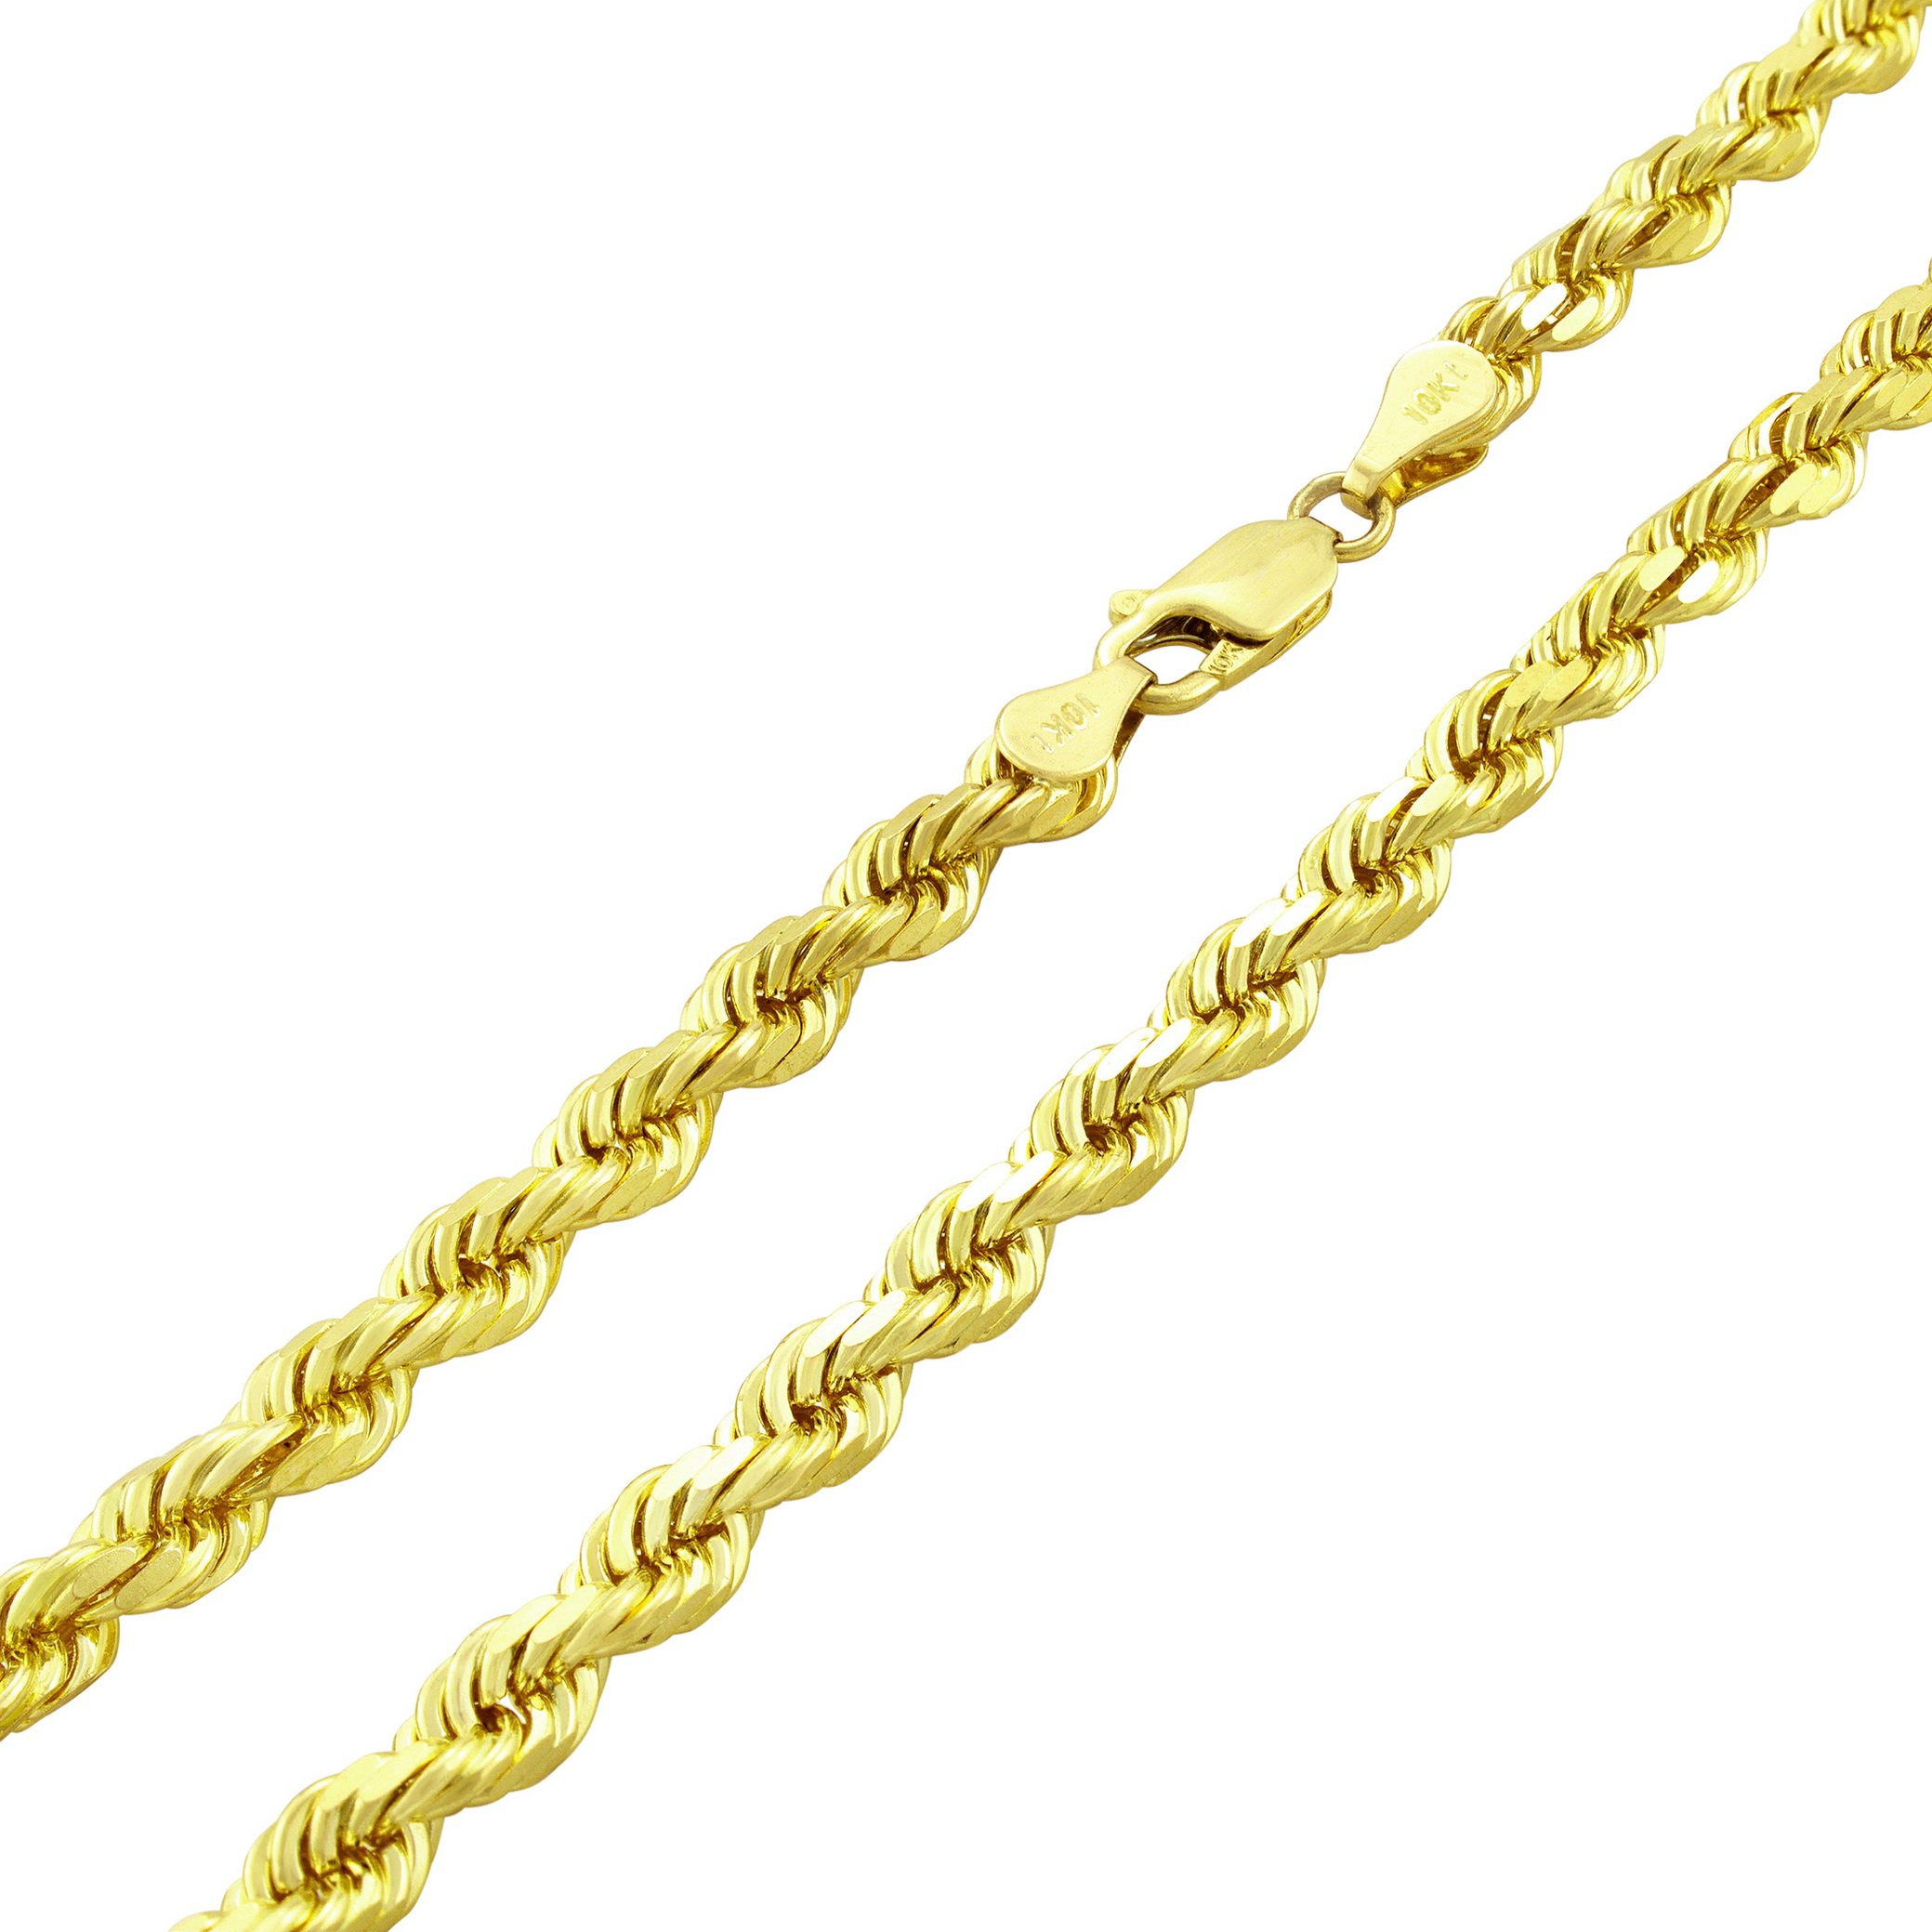 10K-Real-Yellow-Gold-Mens-Wide-5mm-Diamond-Cut-Rope-Chain-Bracelet-8-034-8-5-034-9-034 thumbnail 41